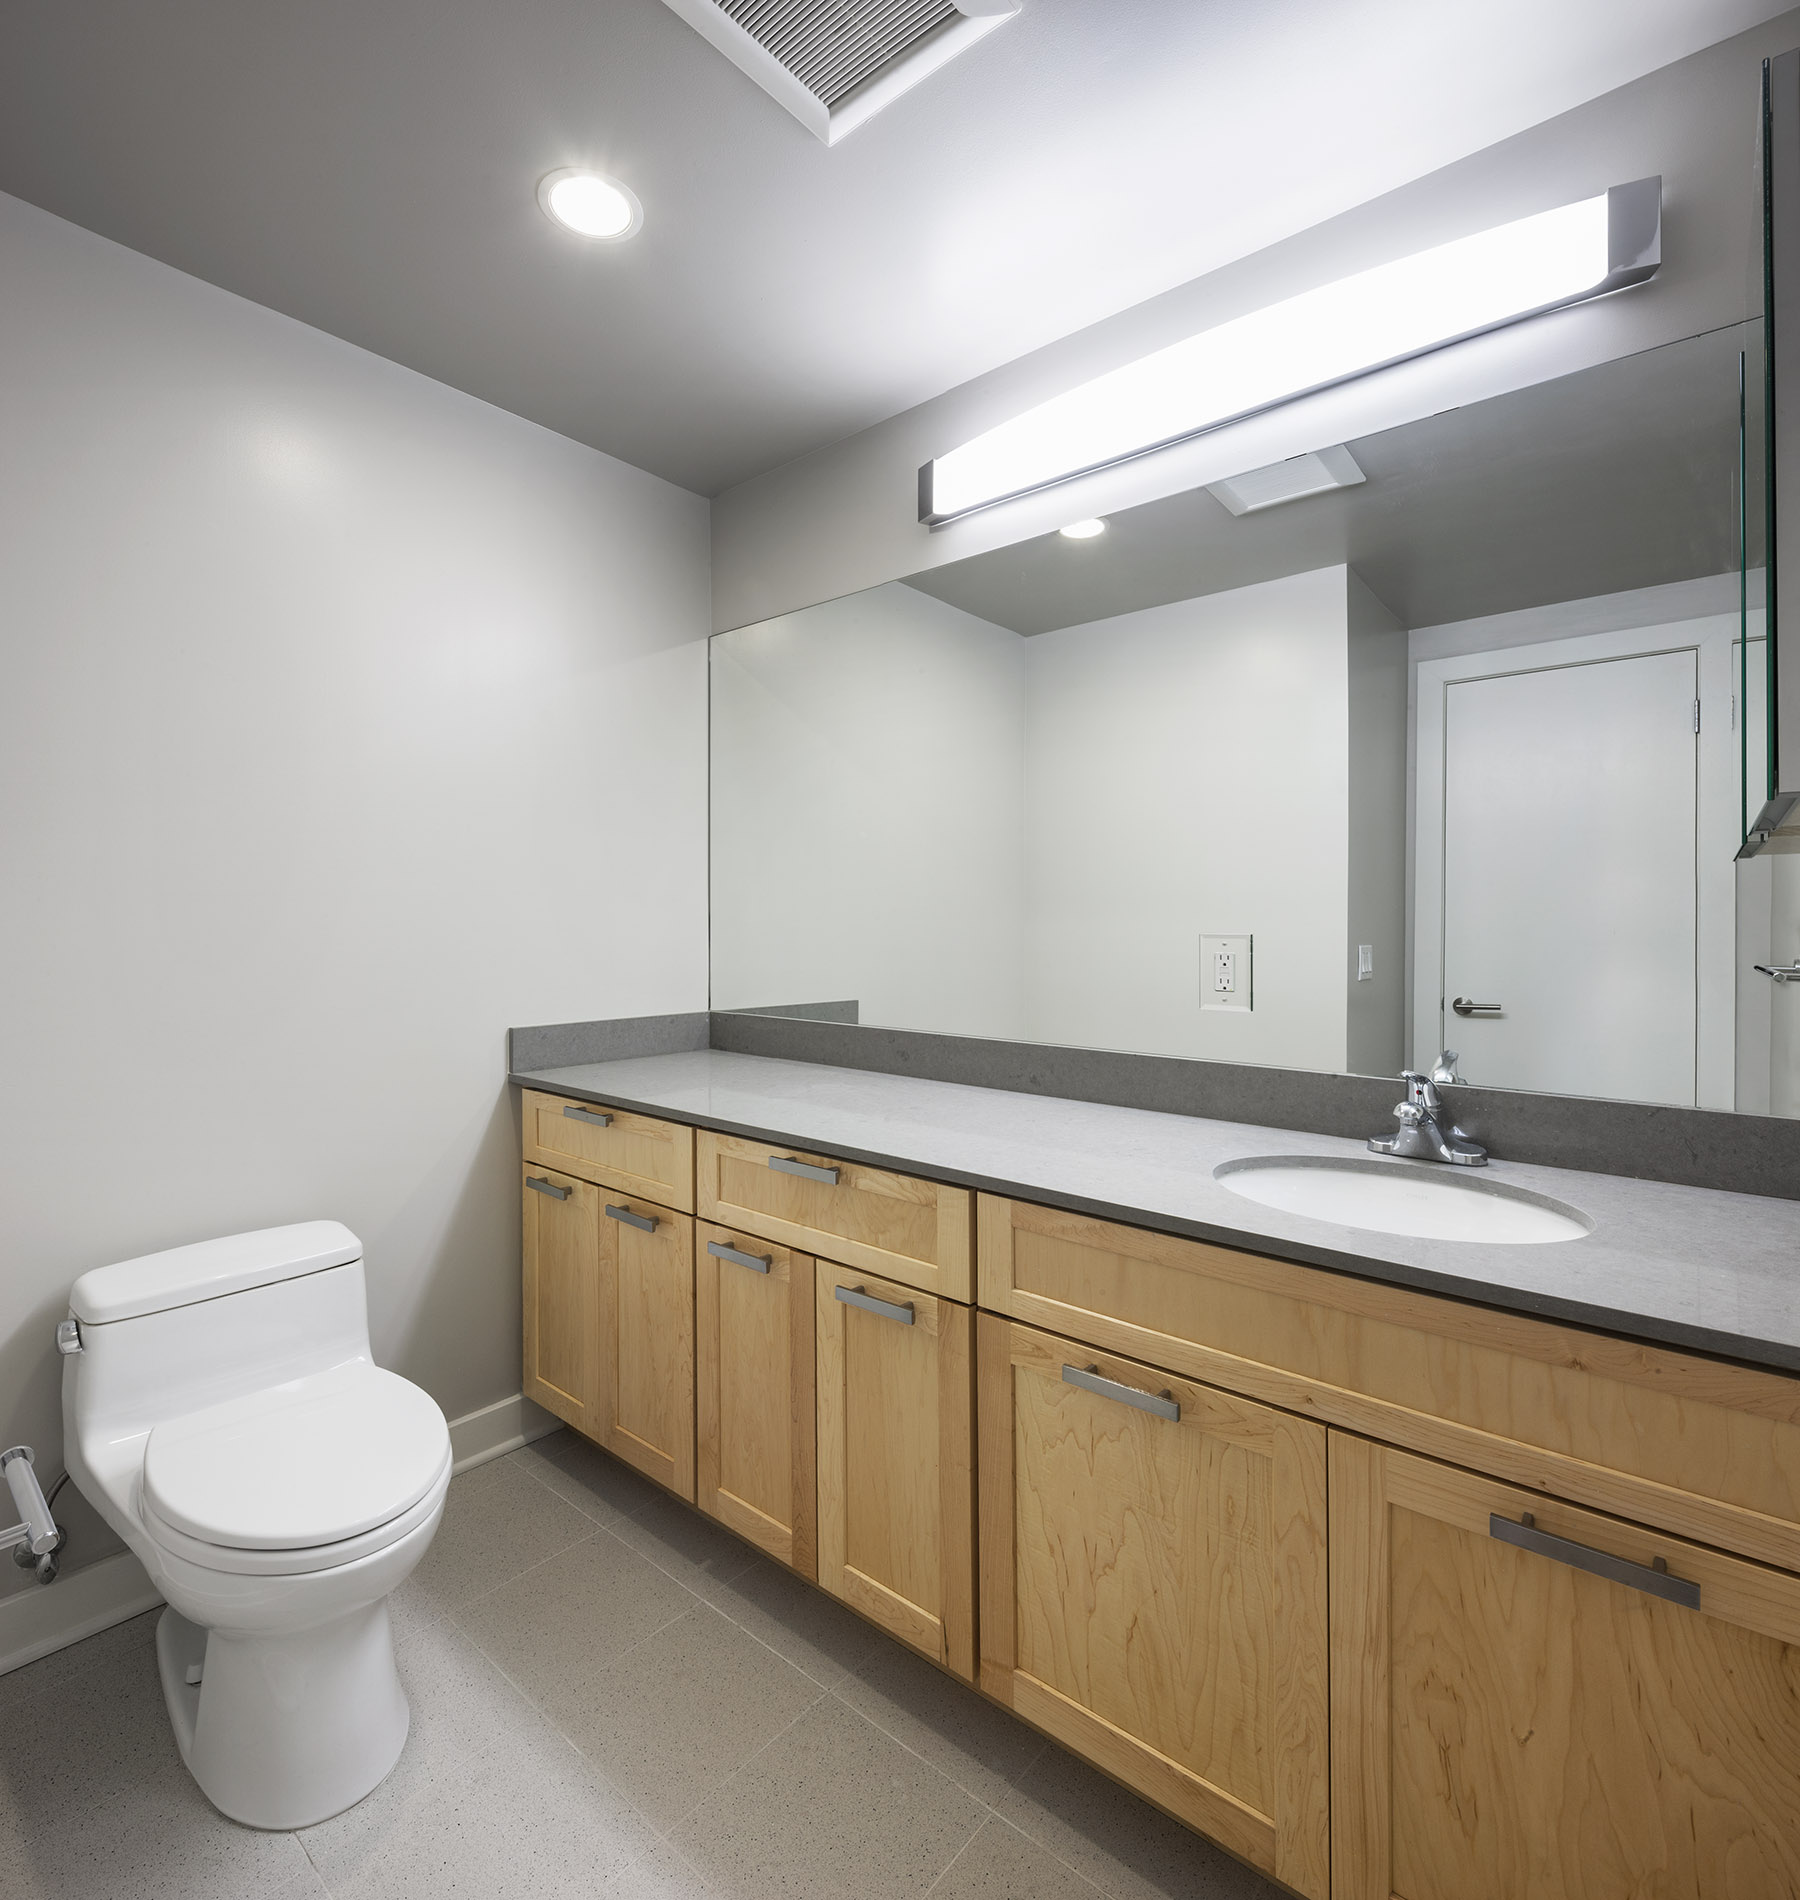 493 Haight Street, San Francisco, California, United States 94117, ,1 BathroomBathrooms,Apartment,Studio,Haight Street,1027